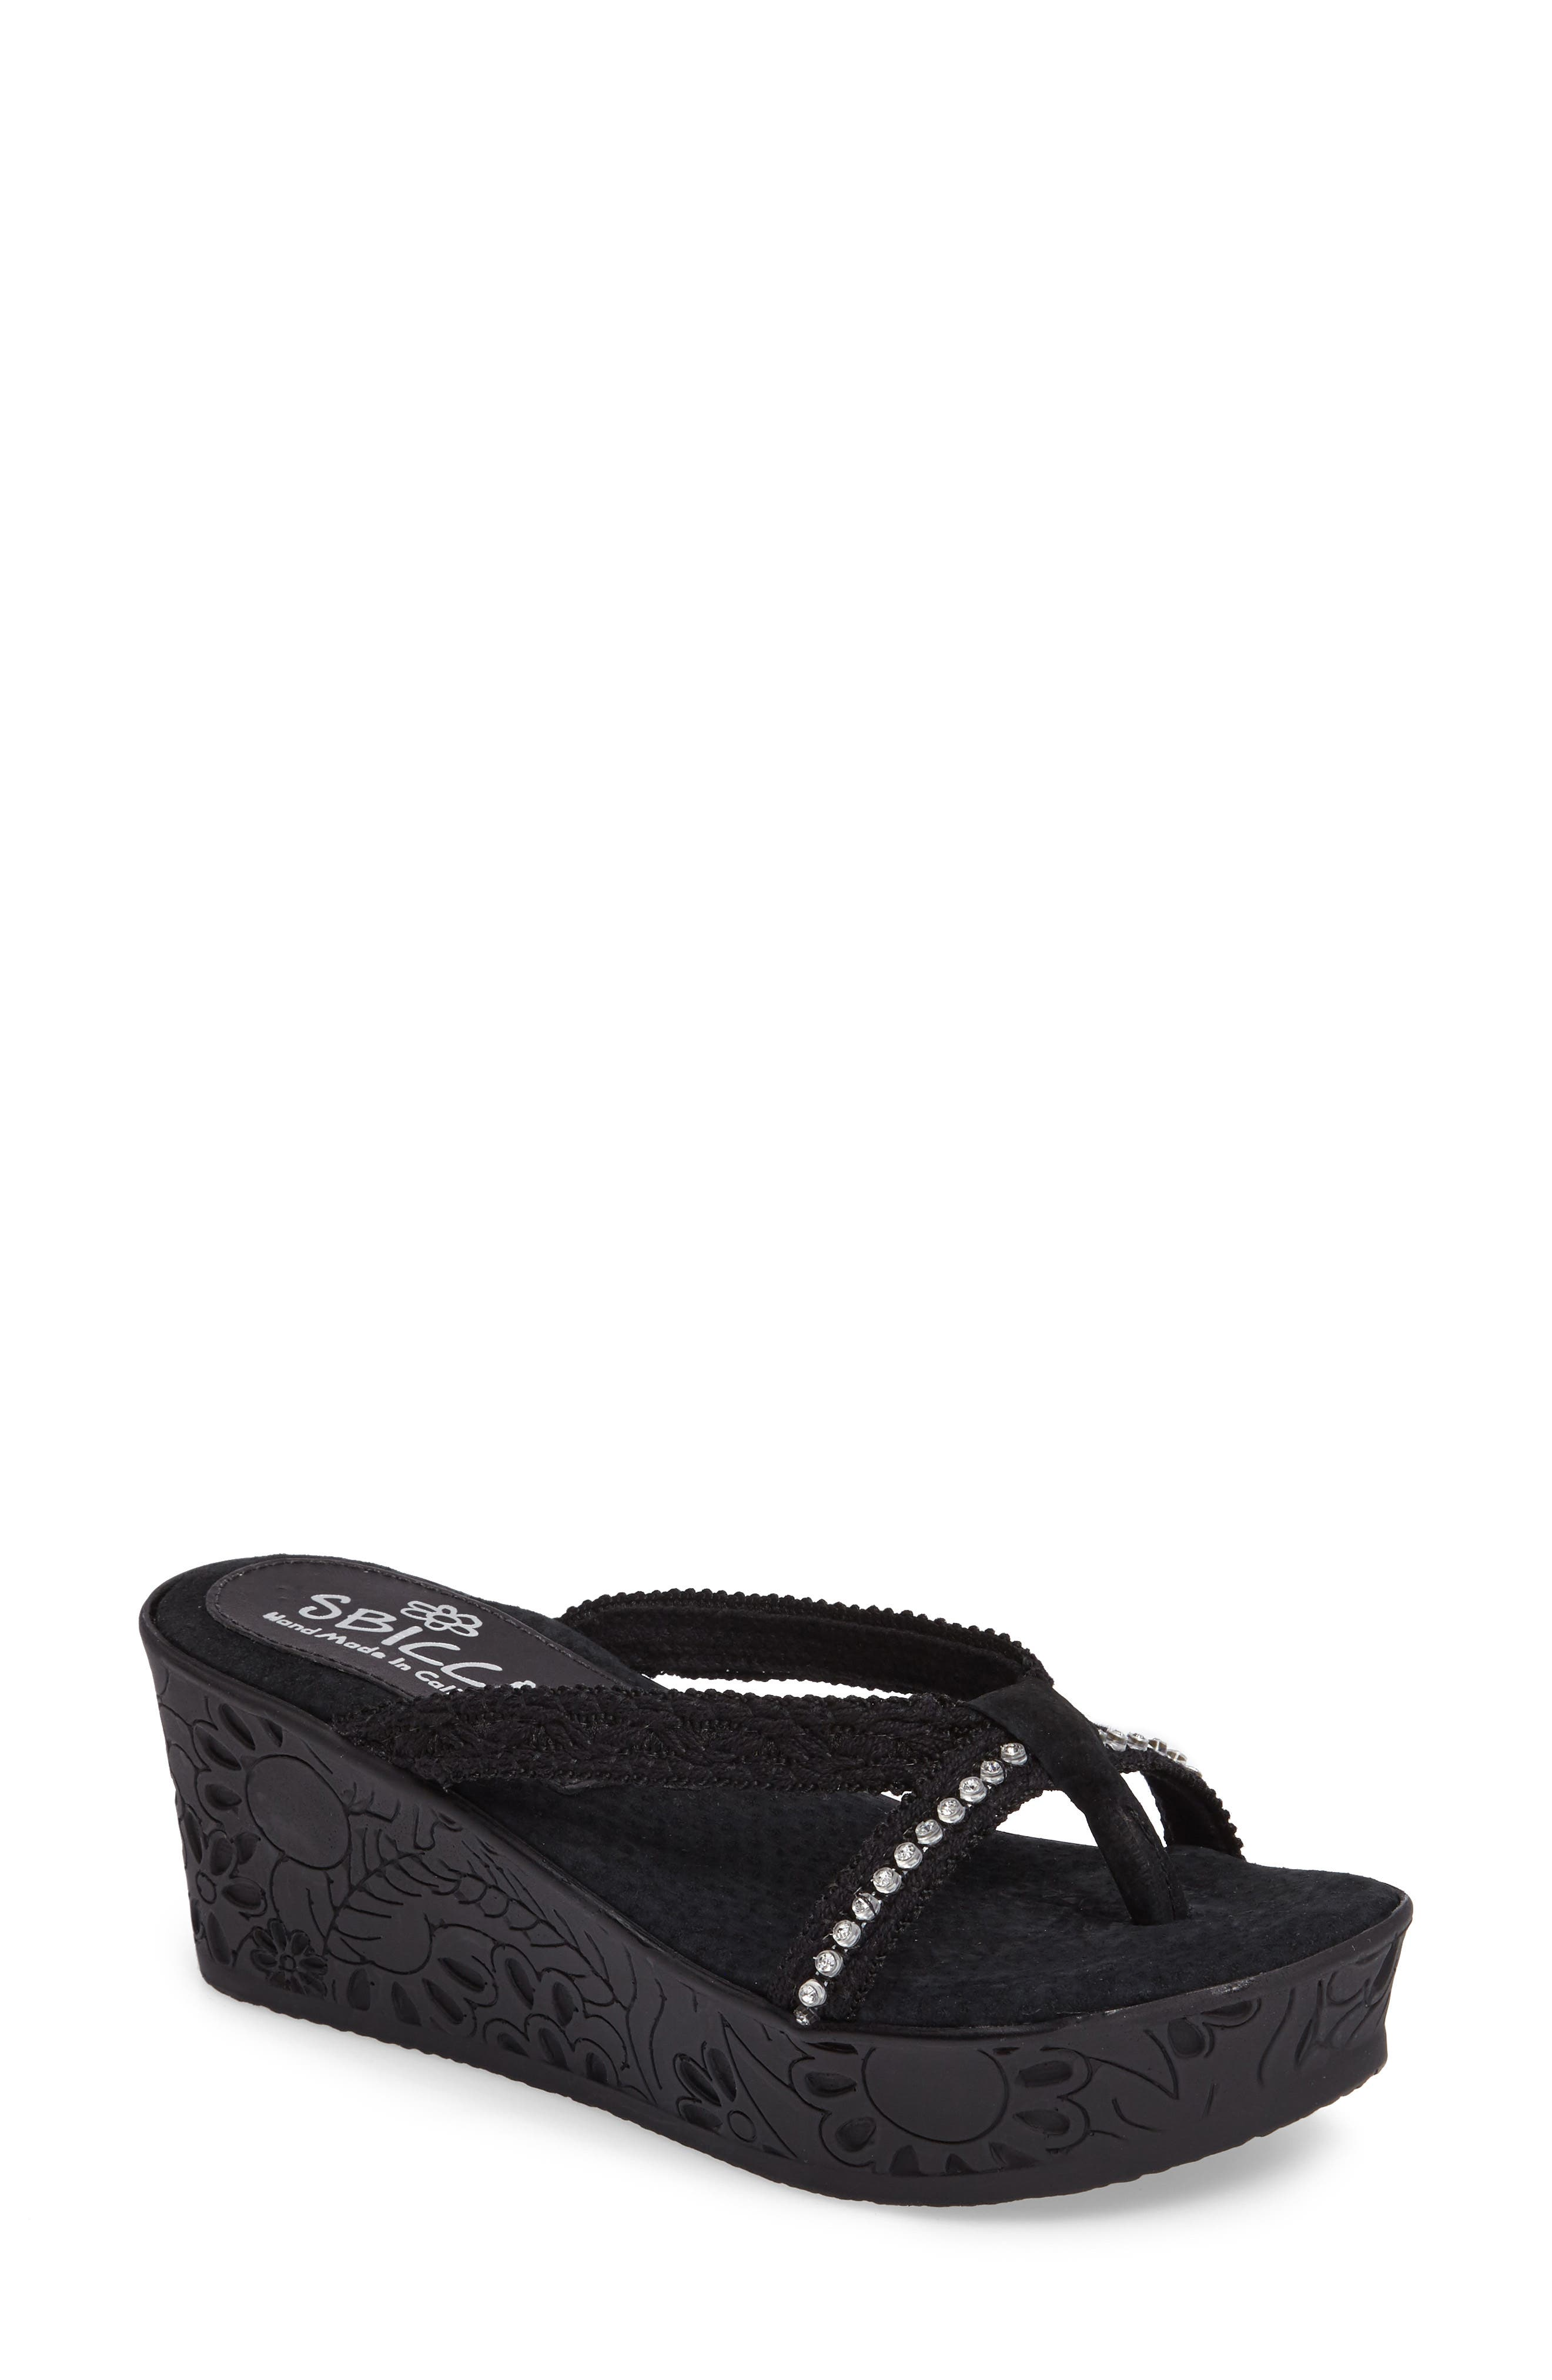 Sbicca Witness Platform Wedge Sandal (Women)